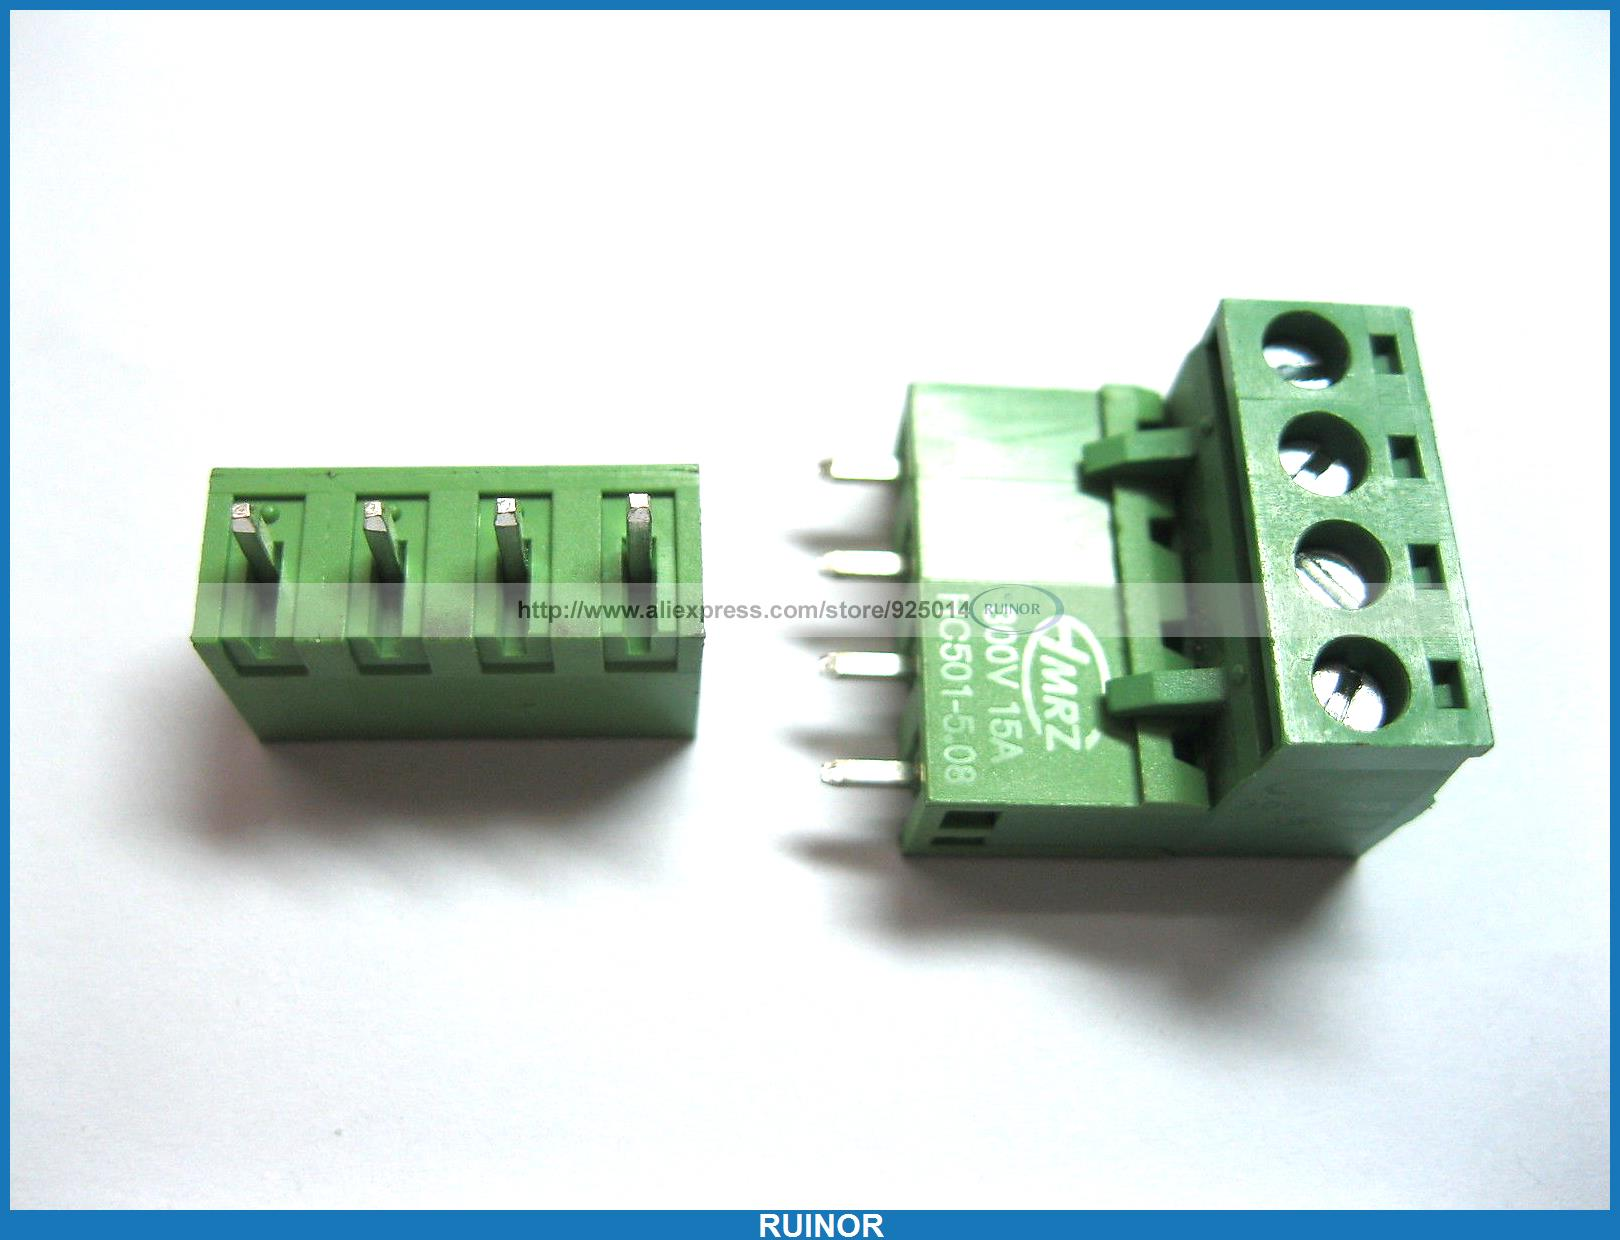 50 Pcs 5 08mm Straight 4 Pin Screw Terminal Block Connector Pluggable Type Green 4pin tc03 10pcs 2edgk 5 08mm 508 terminal wire connectors 2edgk 5 08 4